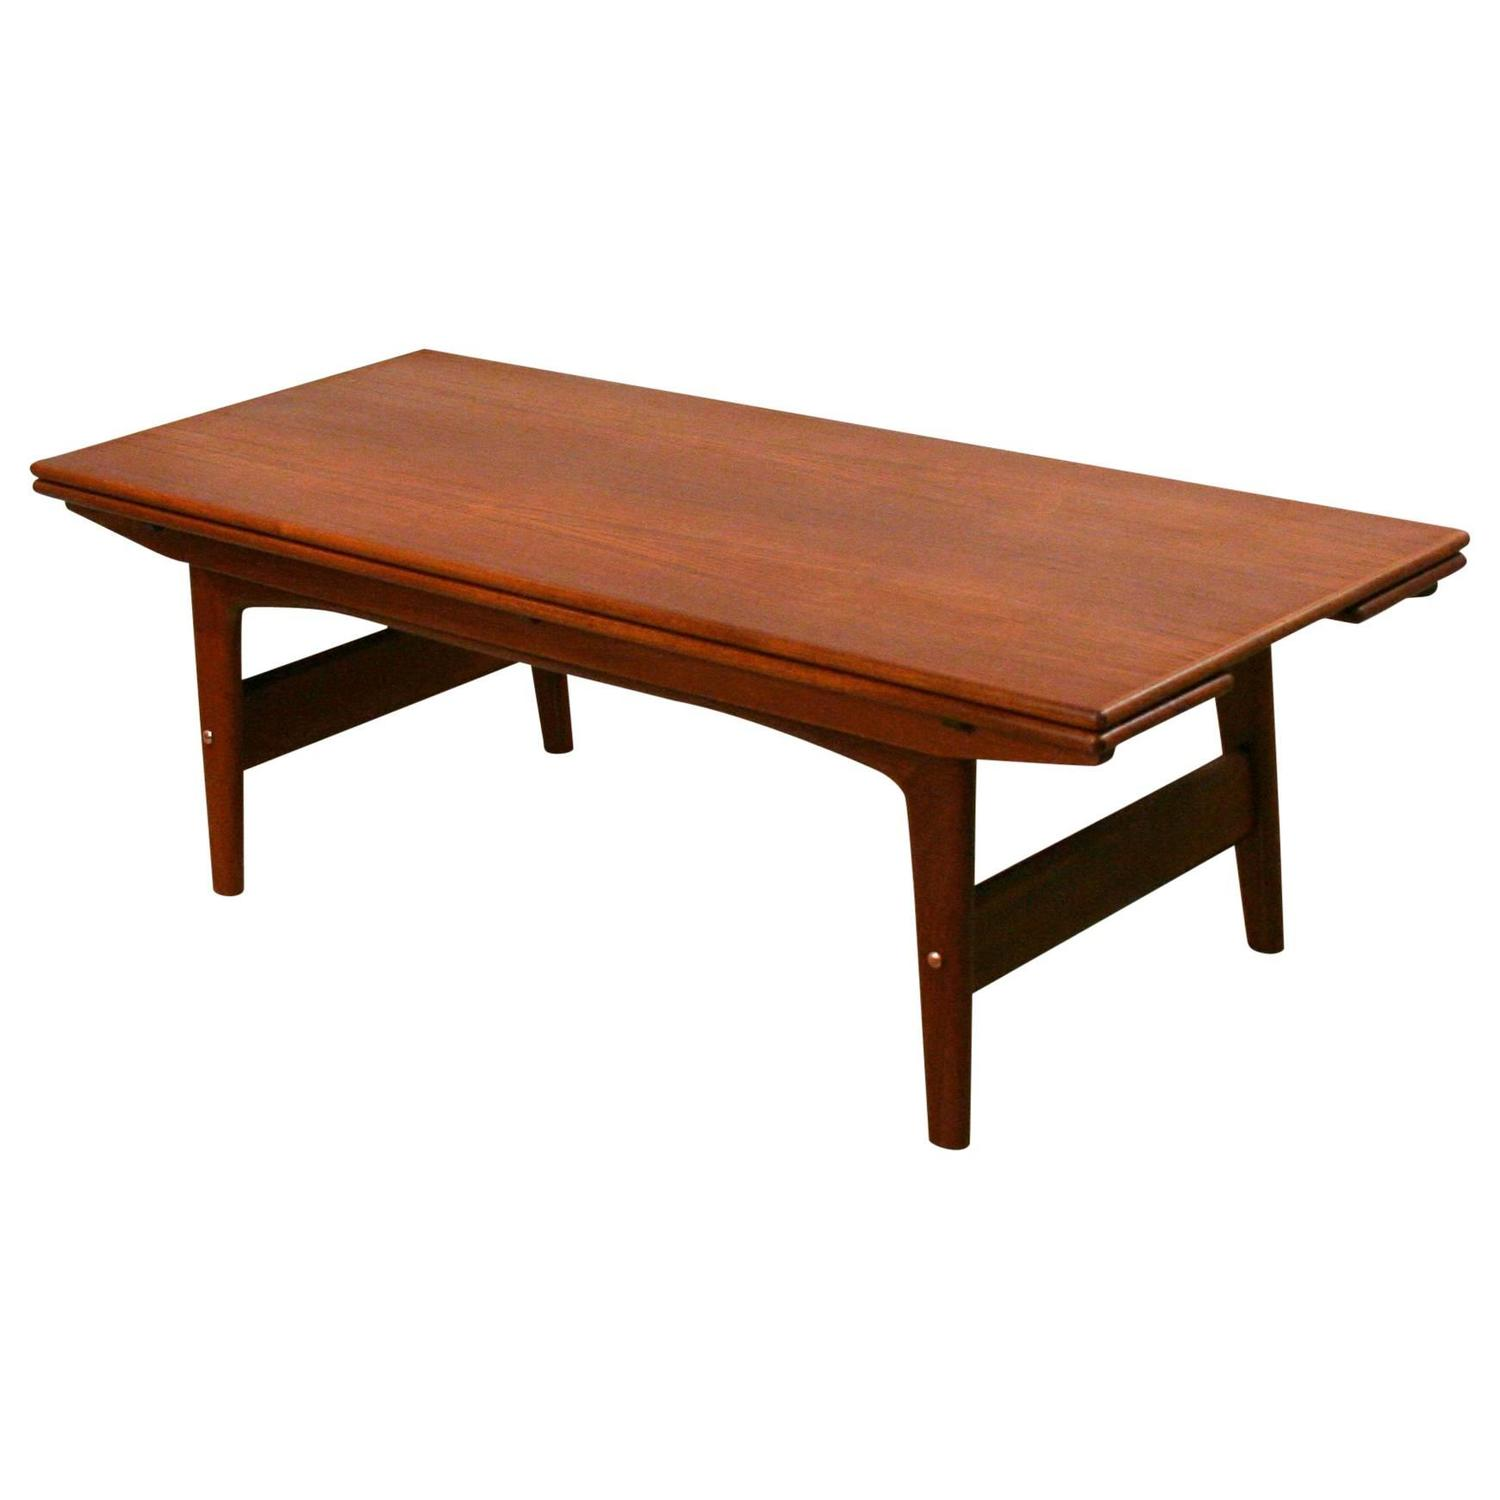 Antique Teak Coffee Table: Vintage Danish Teak Elevator Coffee Table At 1stdibs